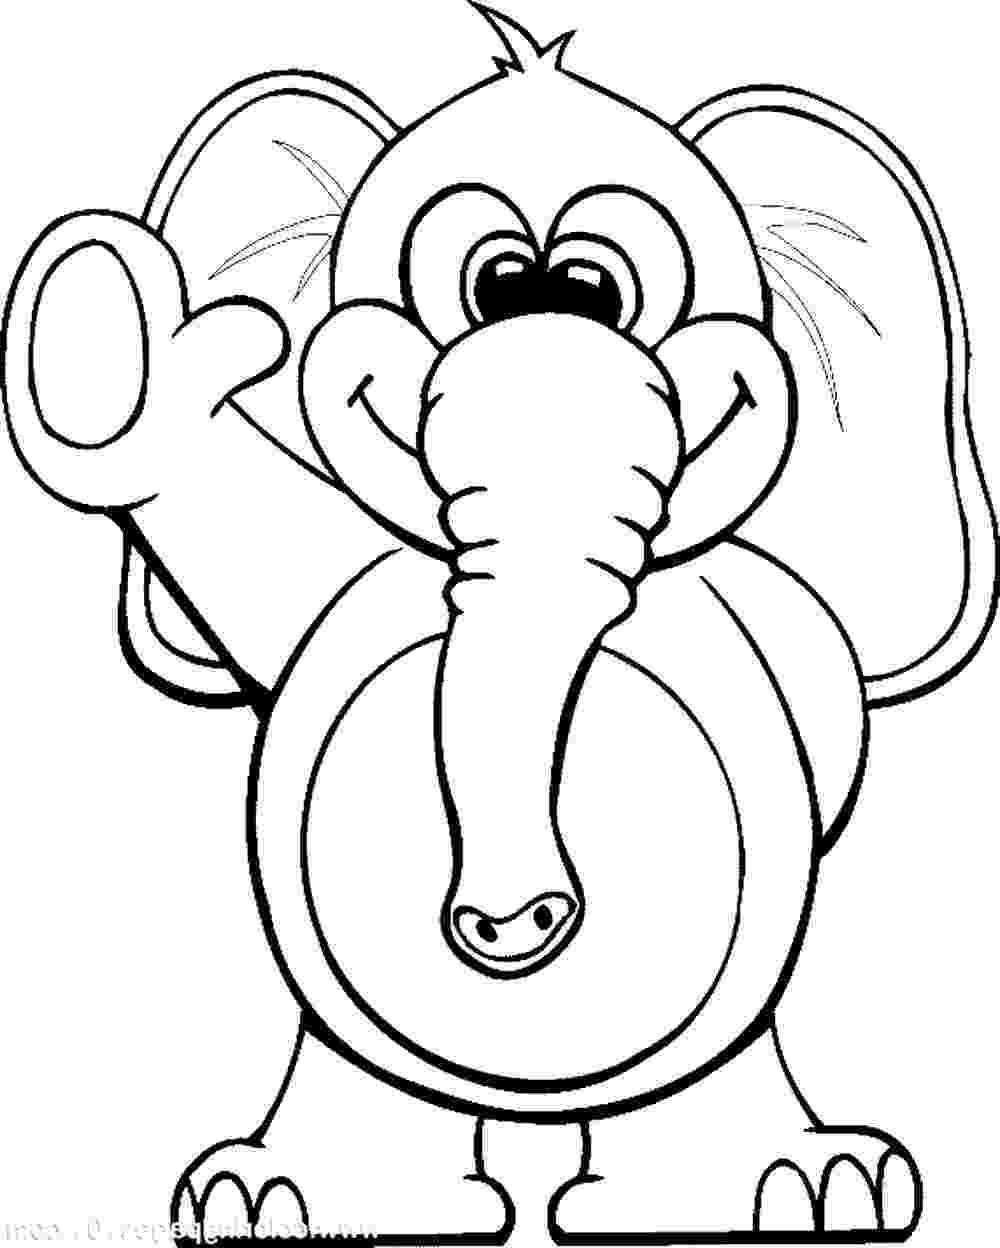 elephant pictures to color coloring book for children elephants stock illustration color pictures to elephant